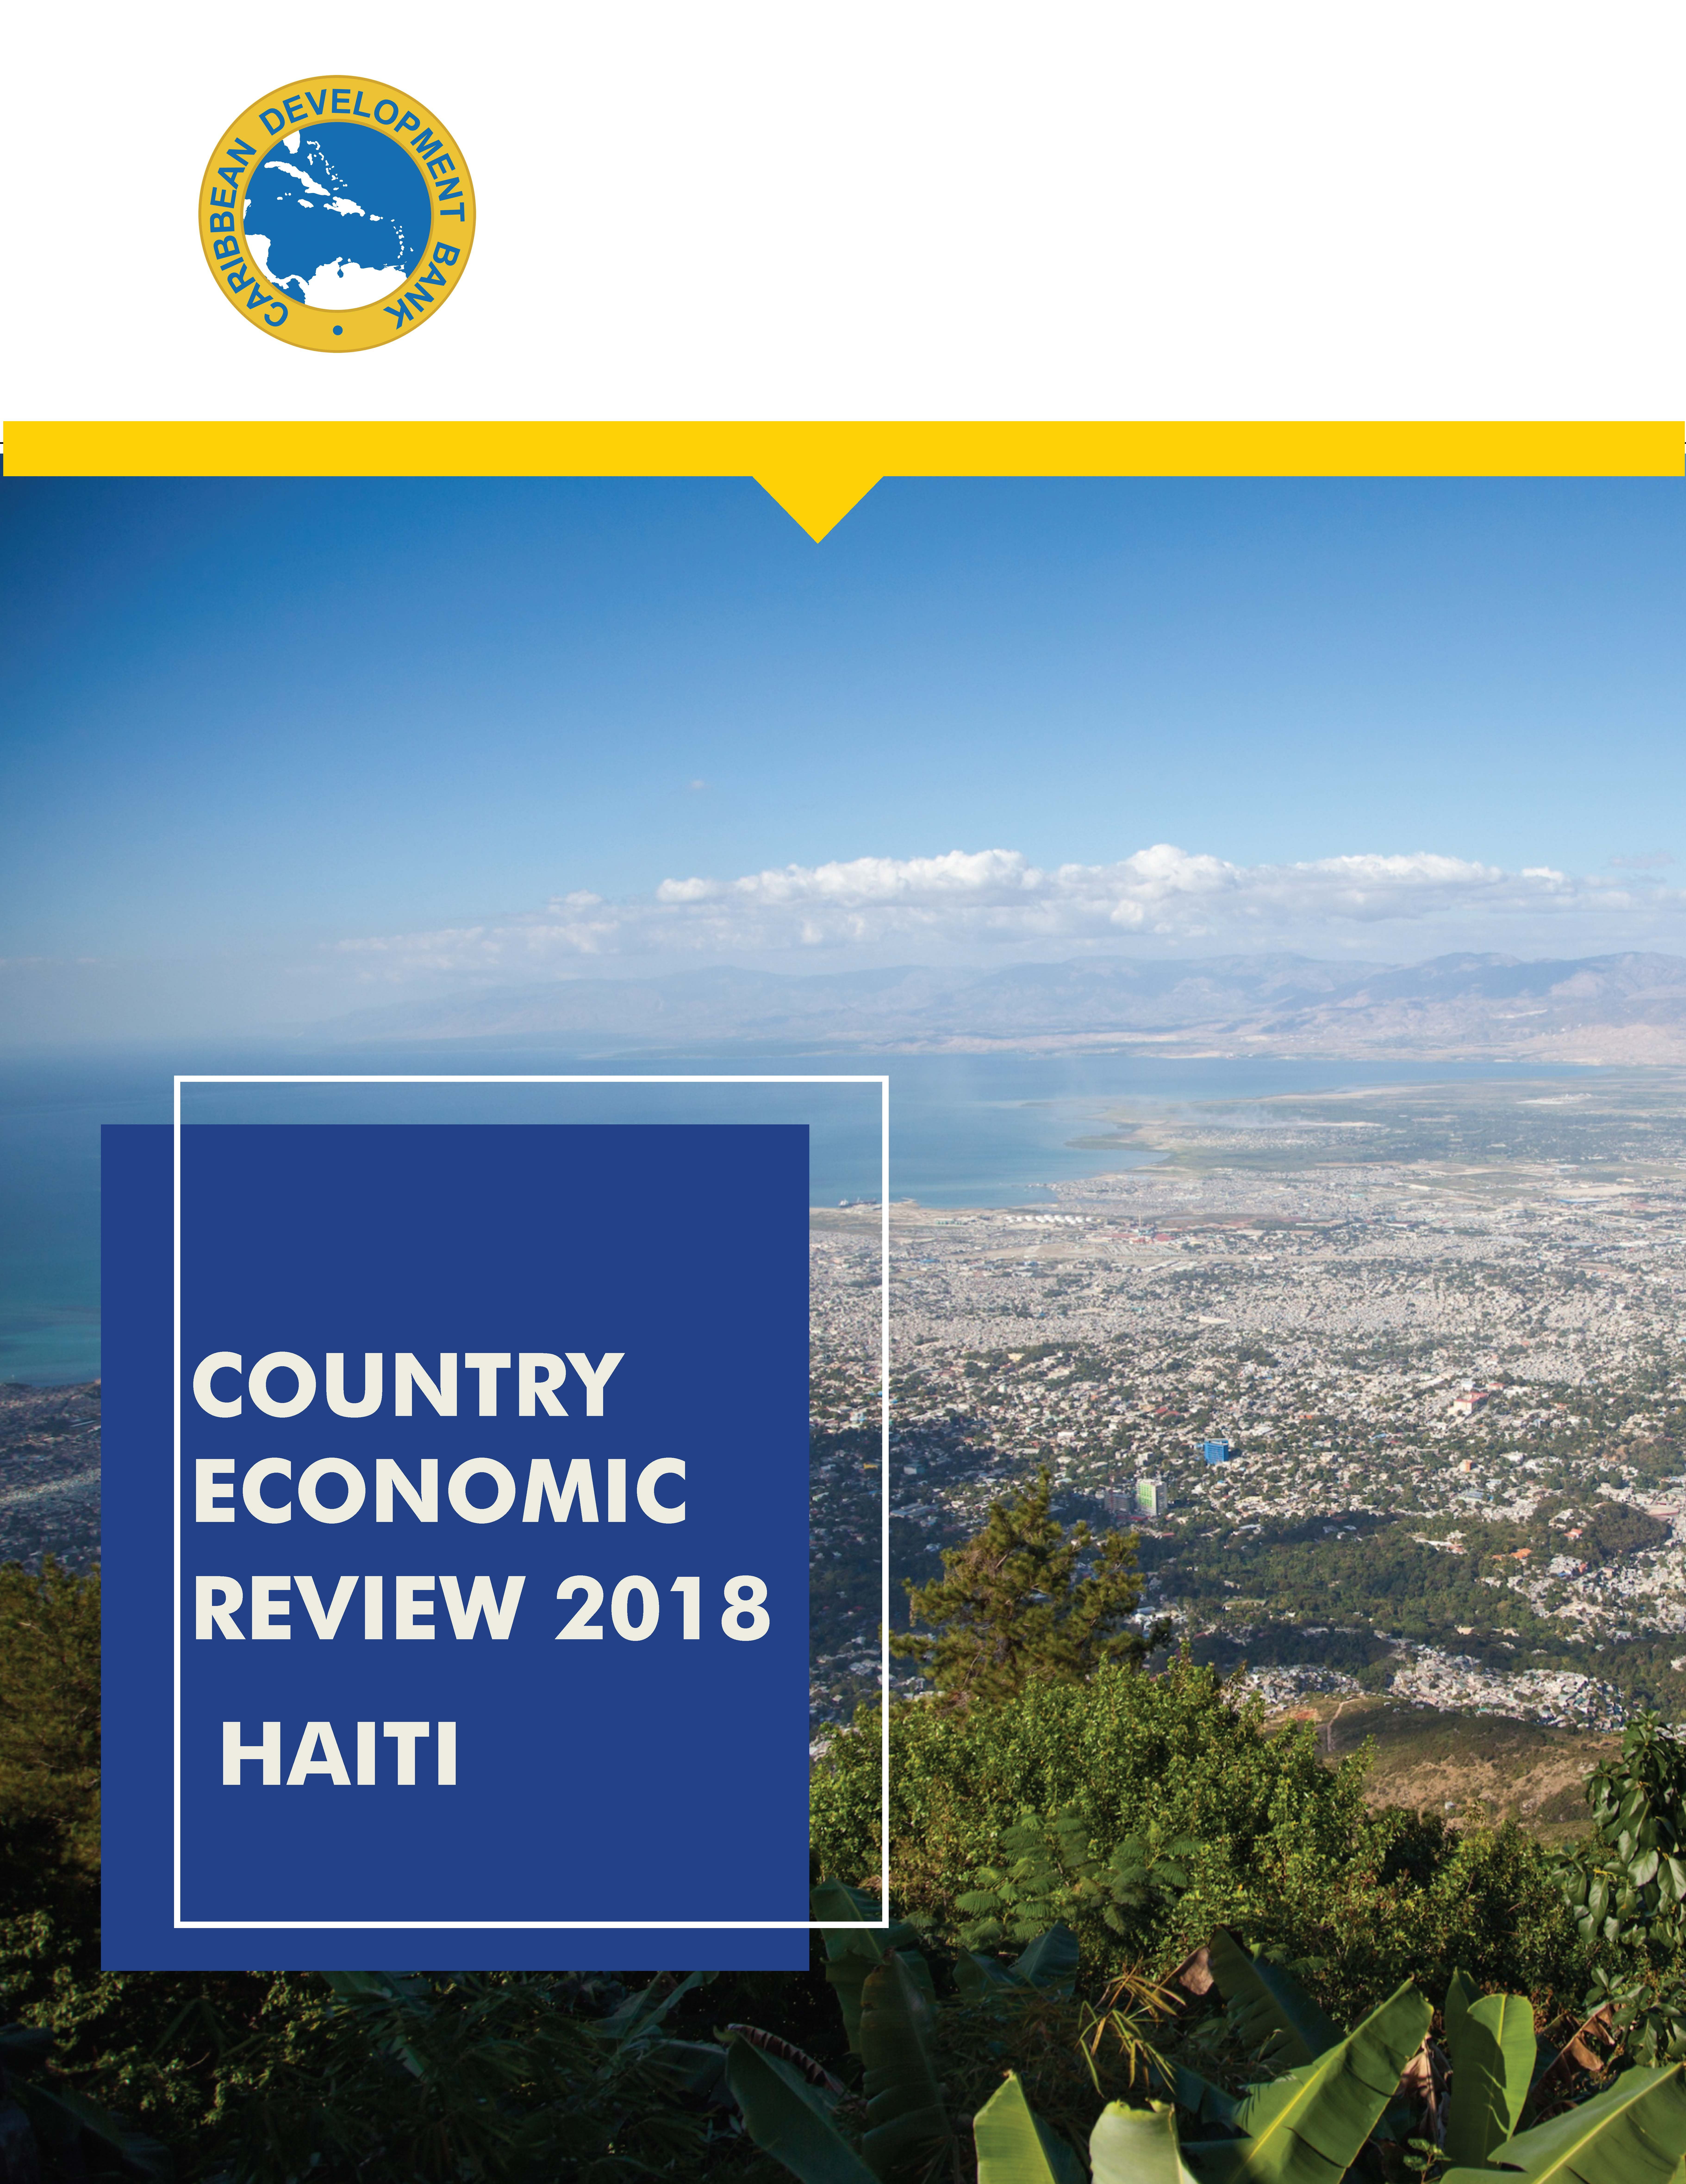 cover of 2018 Economic Review for Haiti showing a view of Port au Prince from the top of a mountain